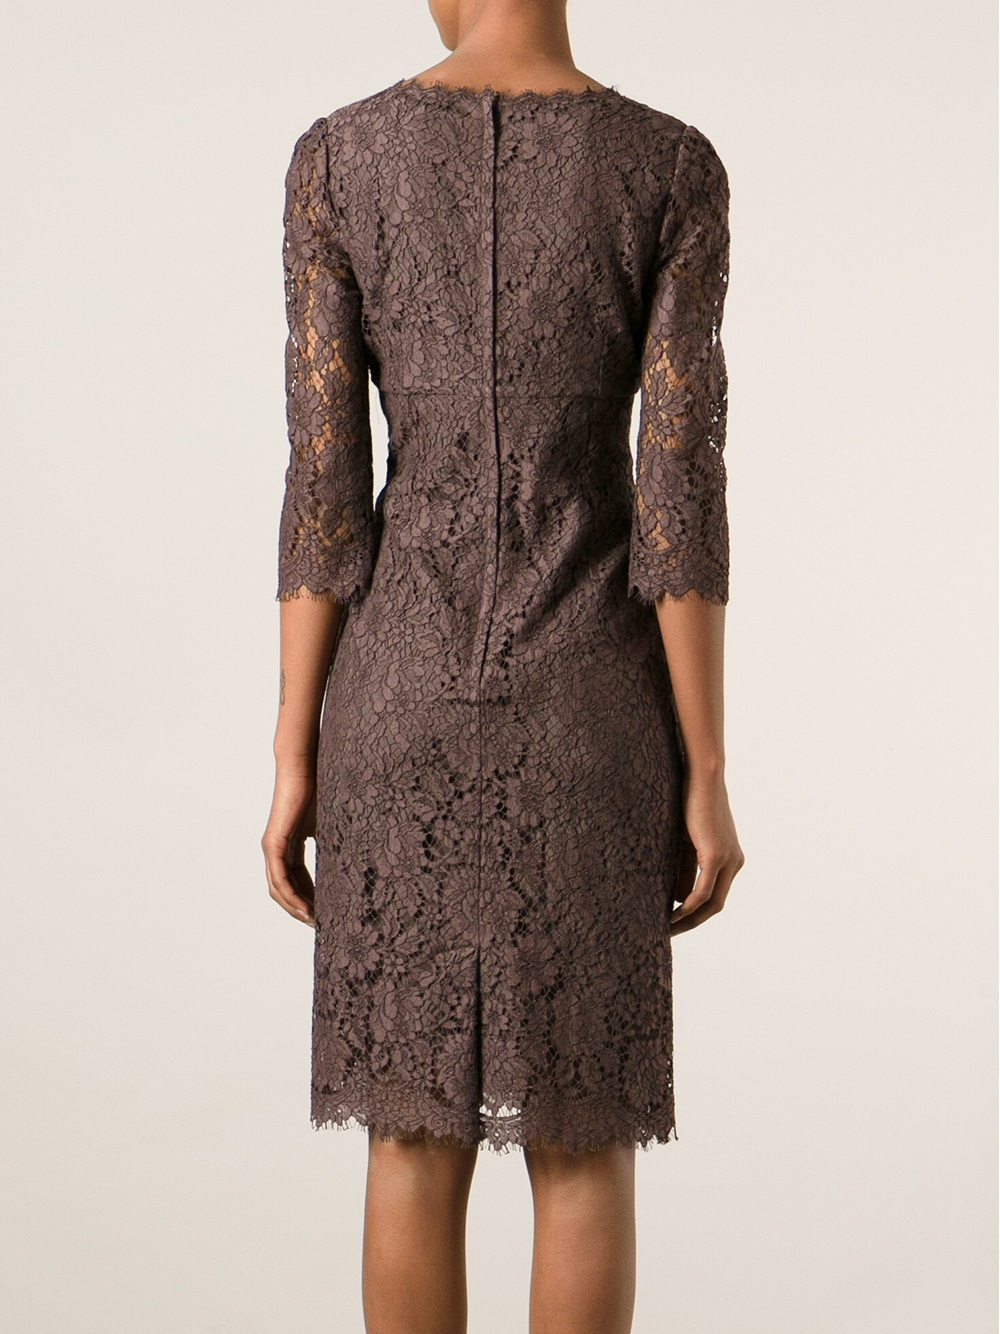 Dolce Amp Gabbana Lace Dress In Brown Lyst